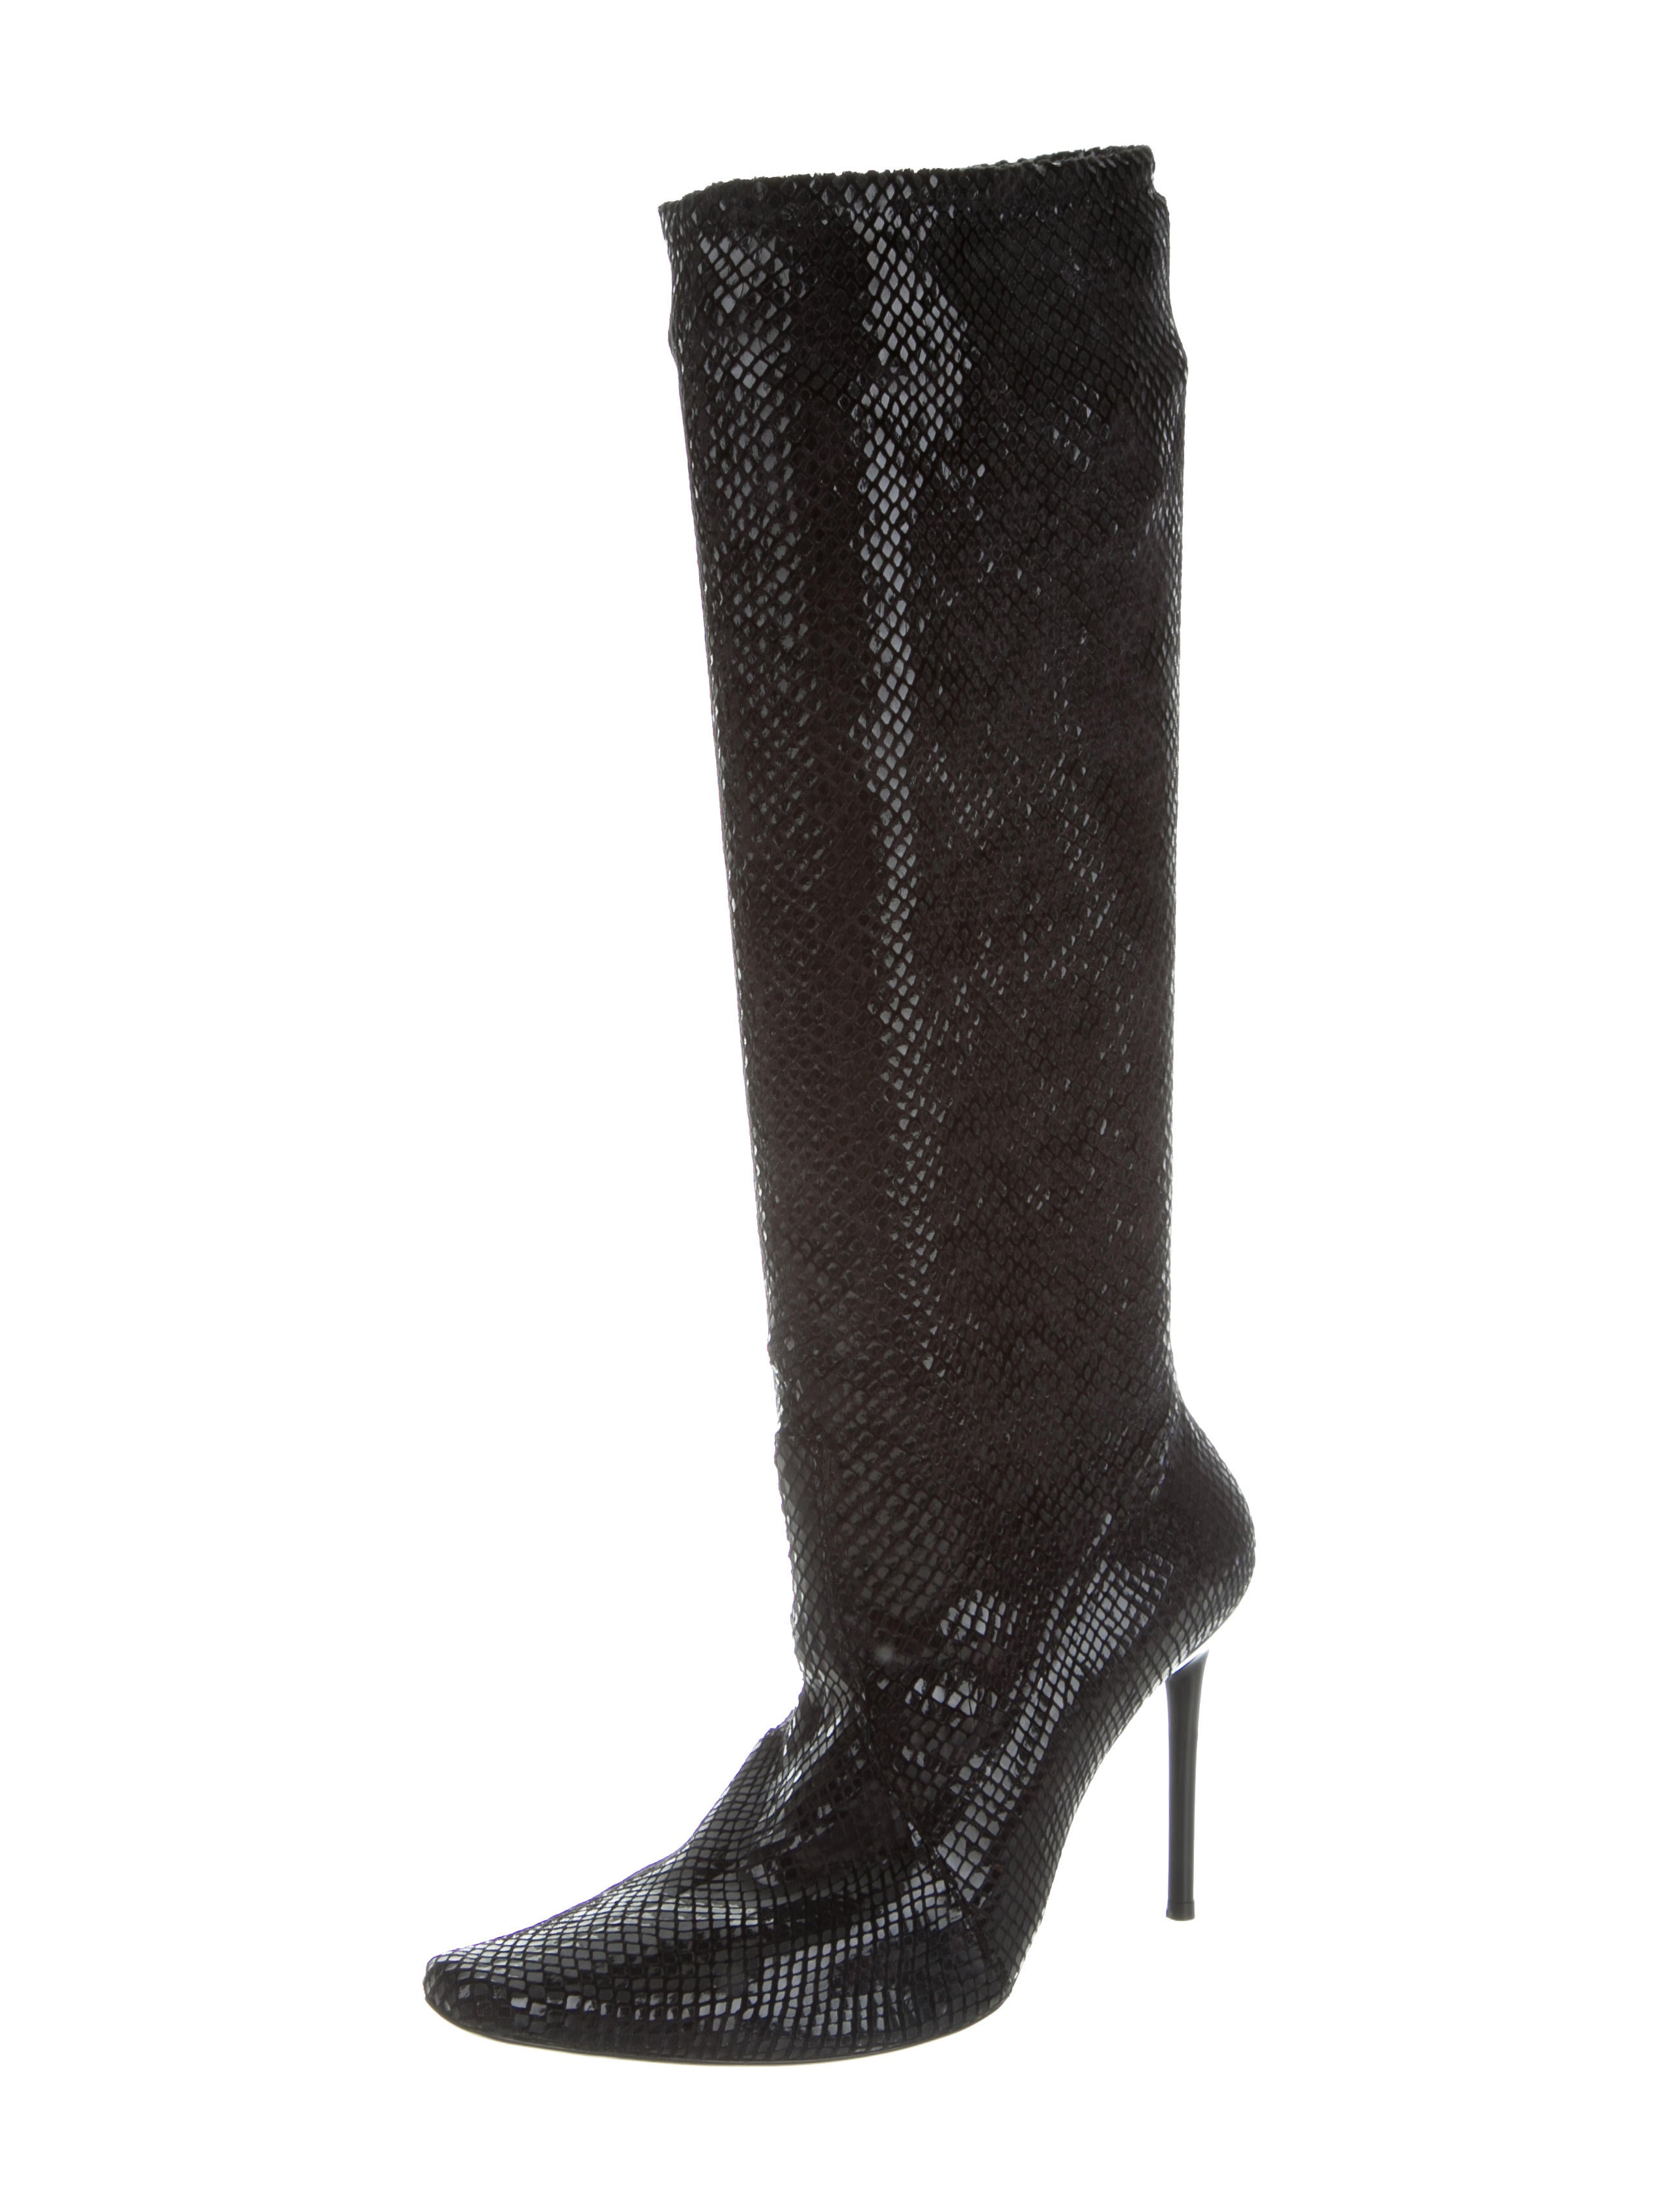 casadei embossed knee high boots shoes cei22754 the realreal. Black Bedroom Furniture Sets. Home Design Ideas